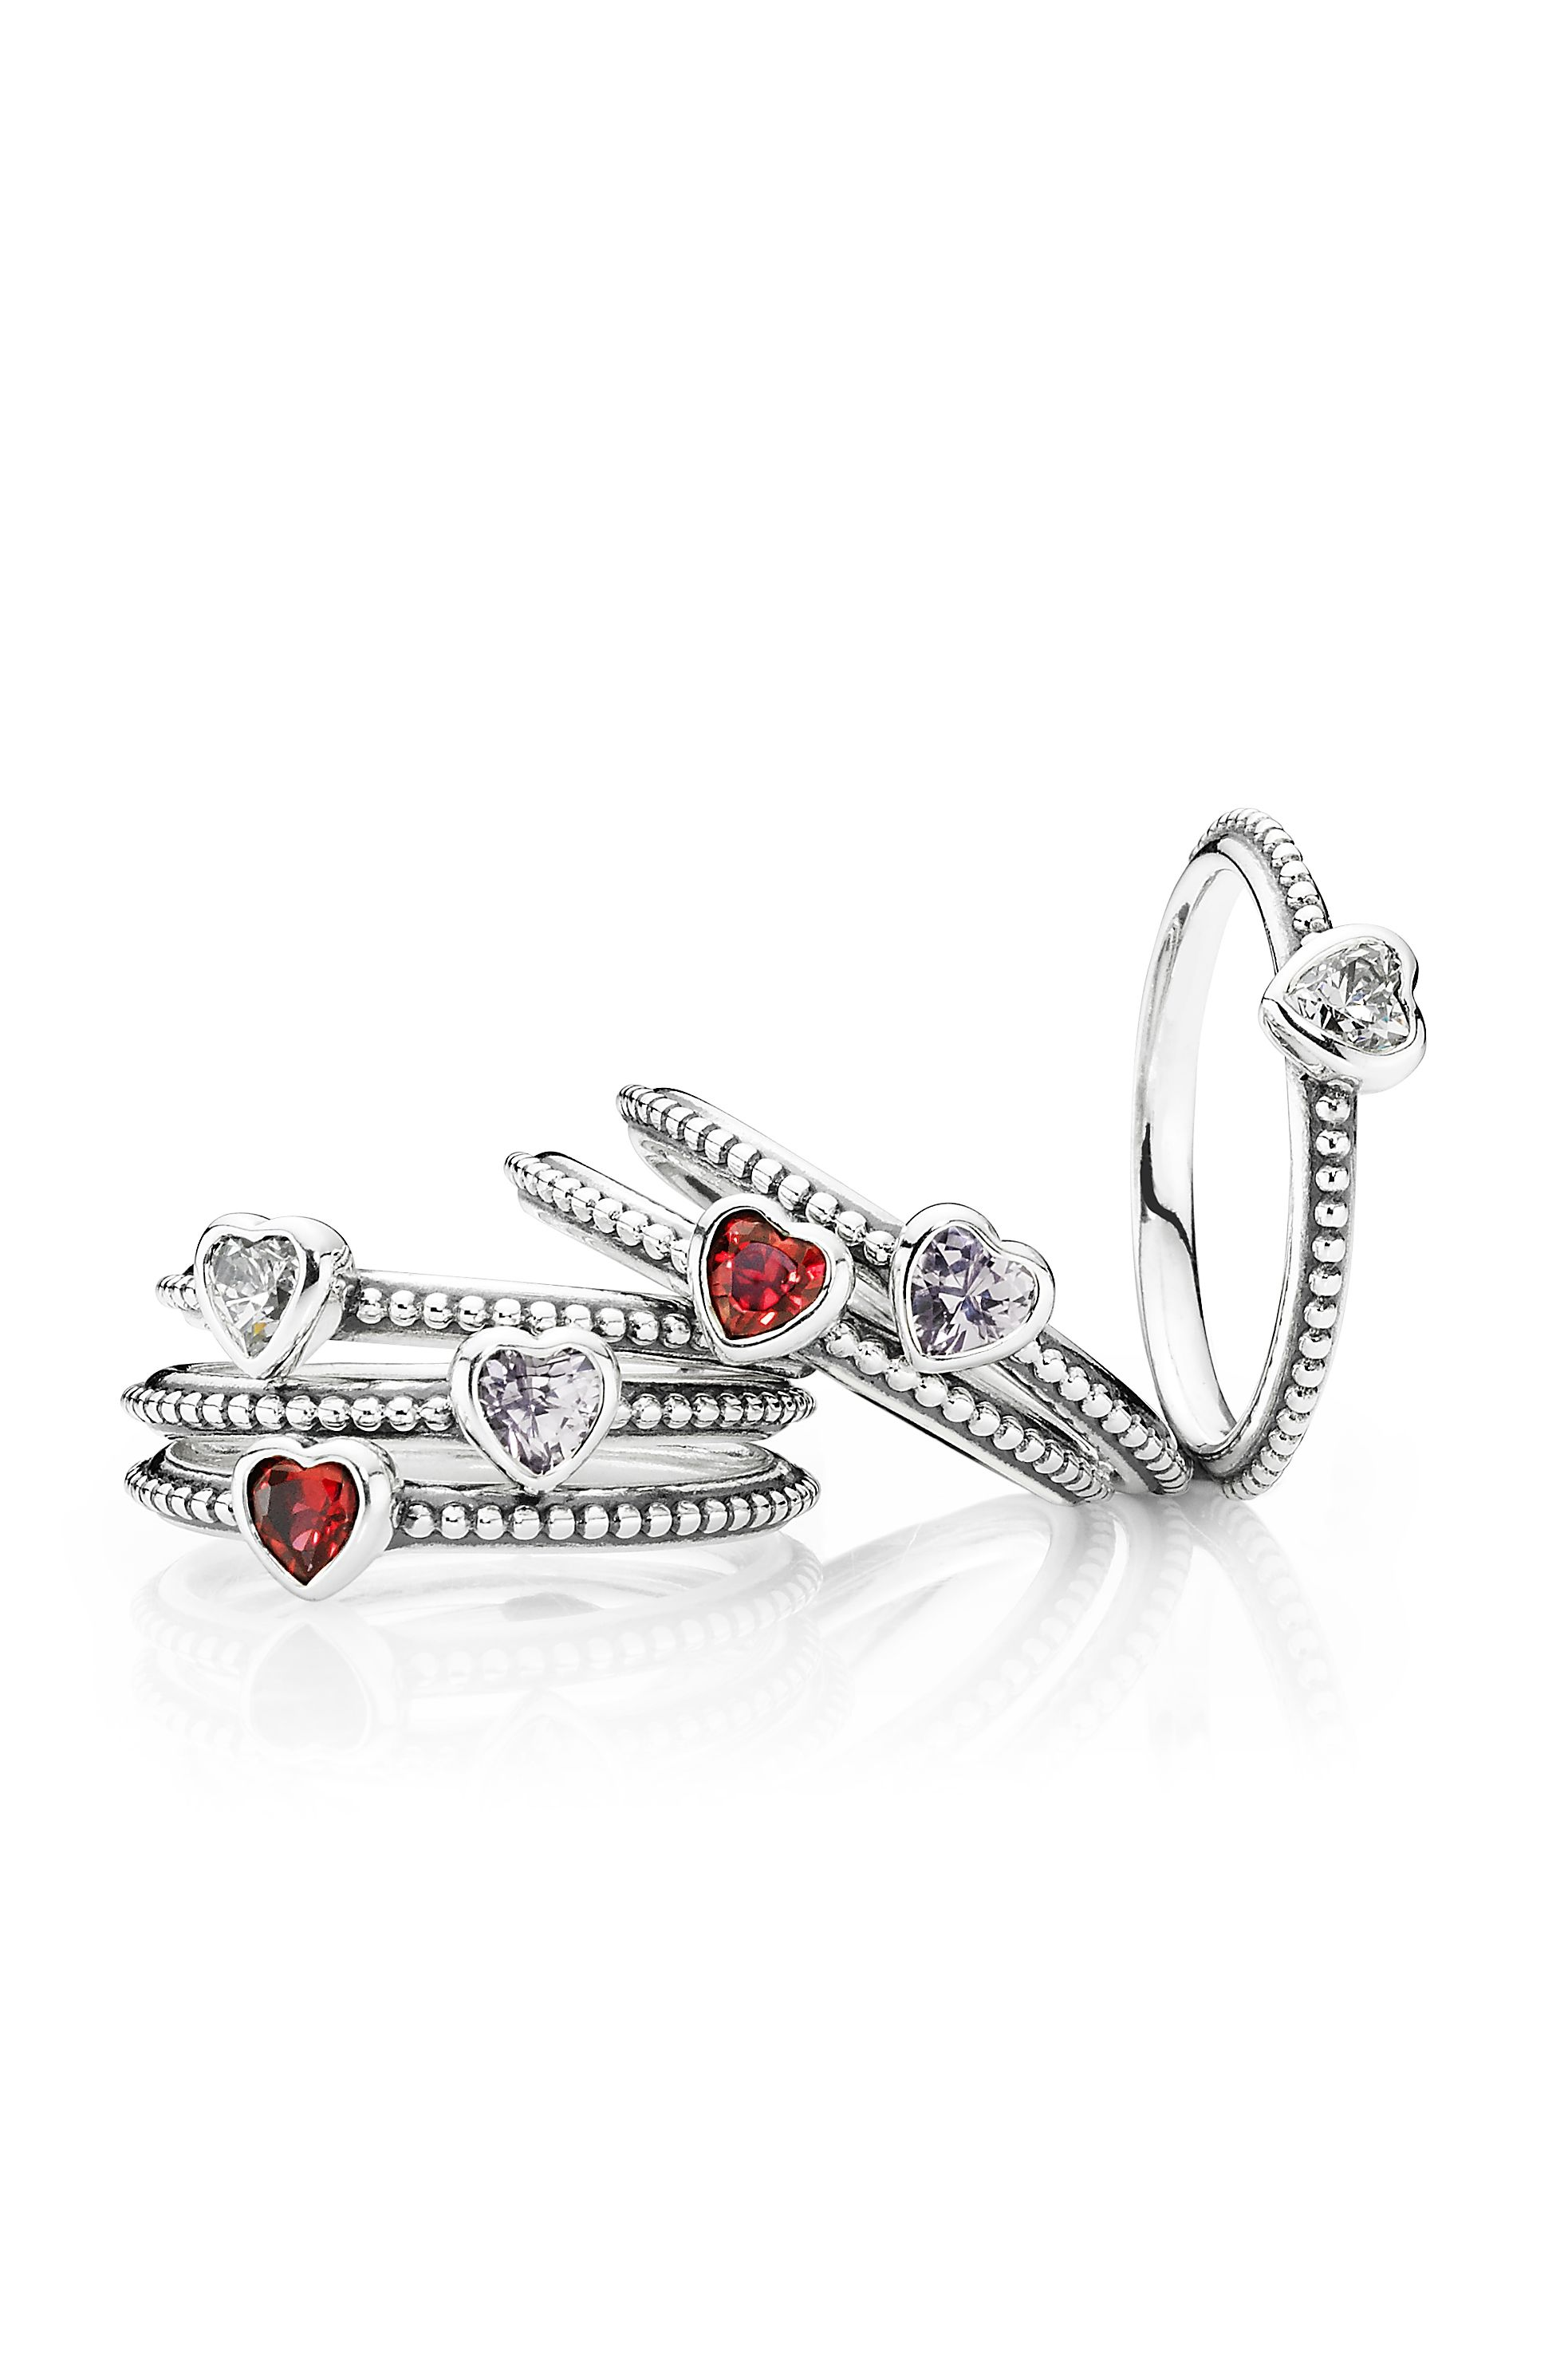 rings friendship c pandora sell buy earrings charm